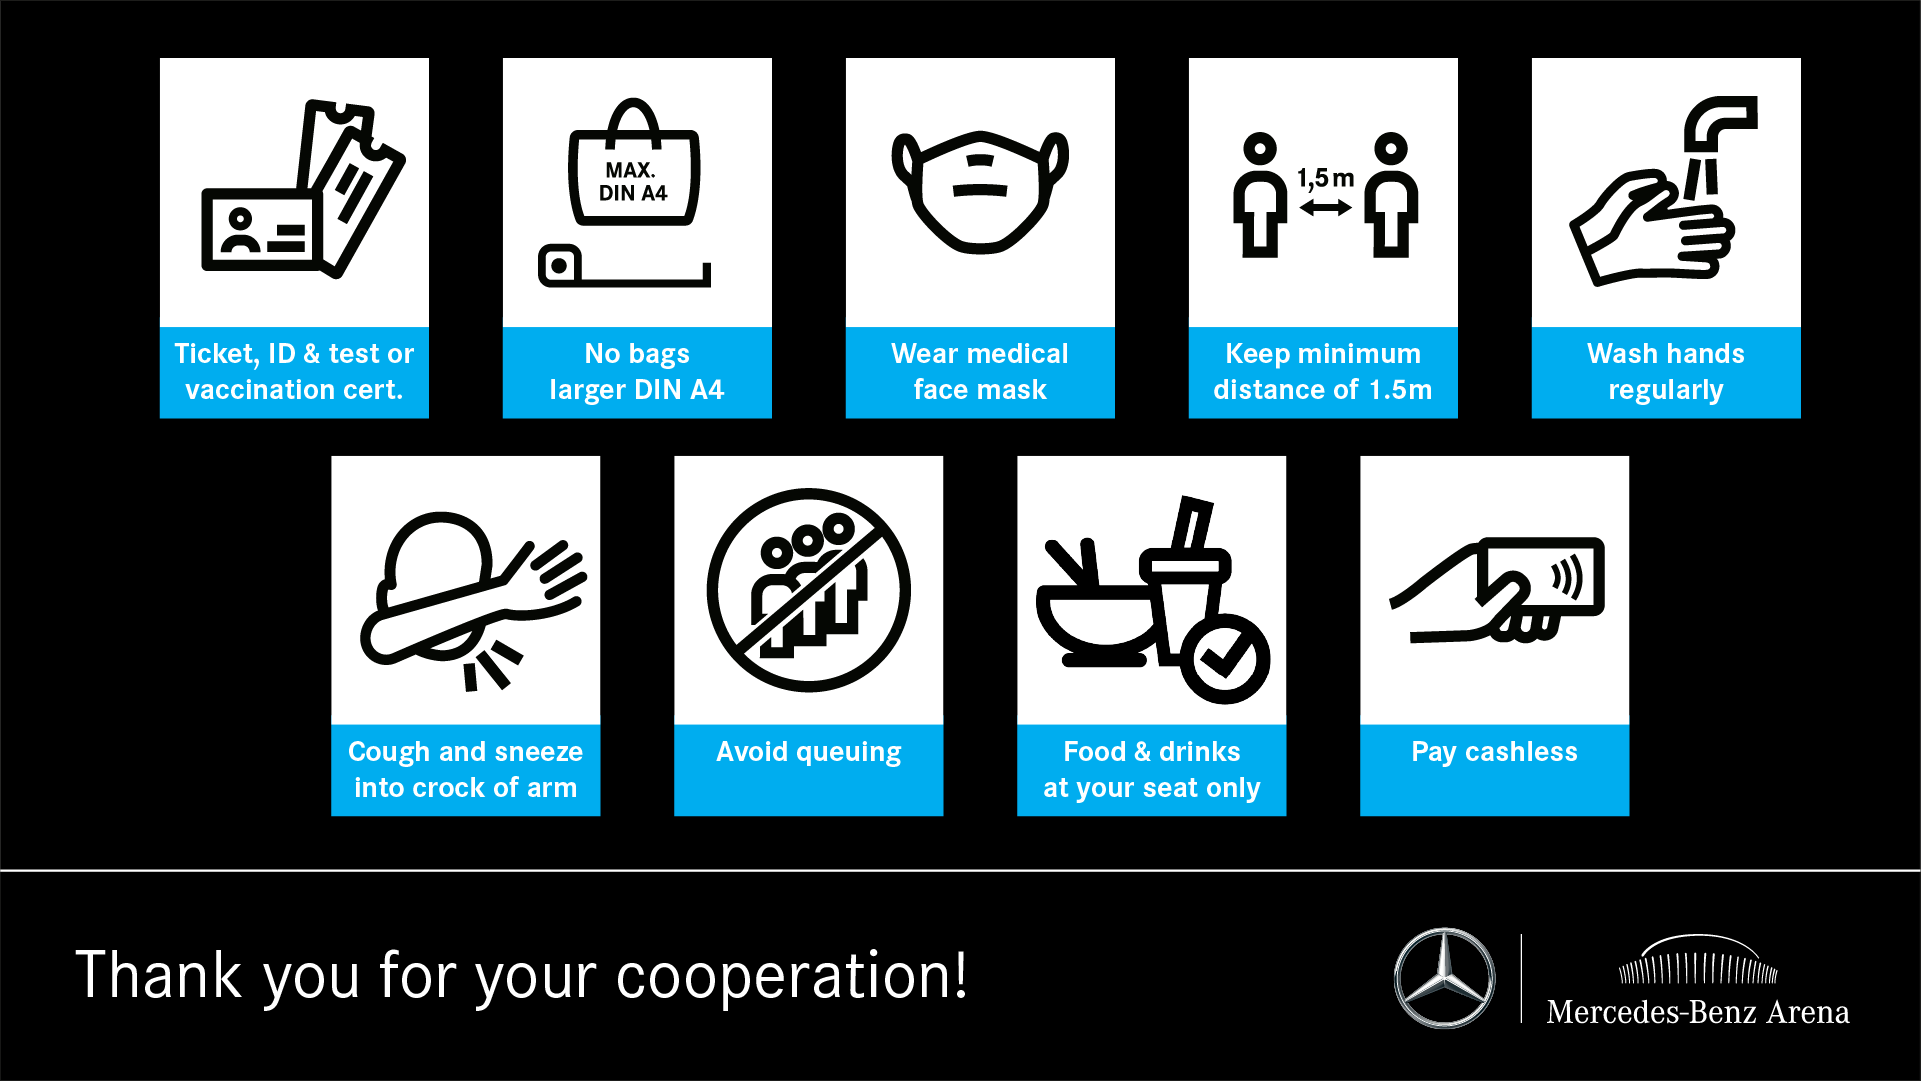 MBA_210908_AnOp_Hygiene_Icons_1920x1080px_01_03_ENG.png